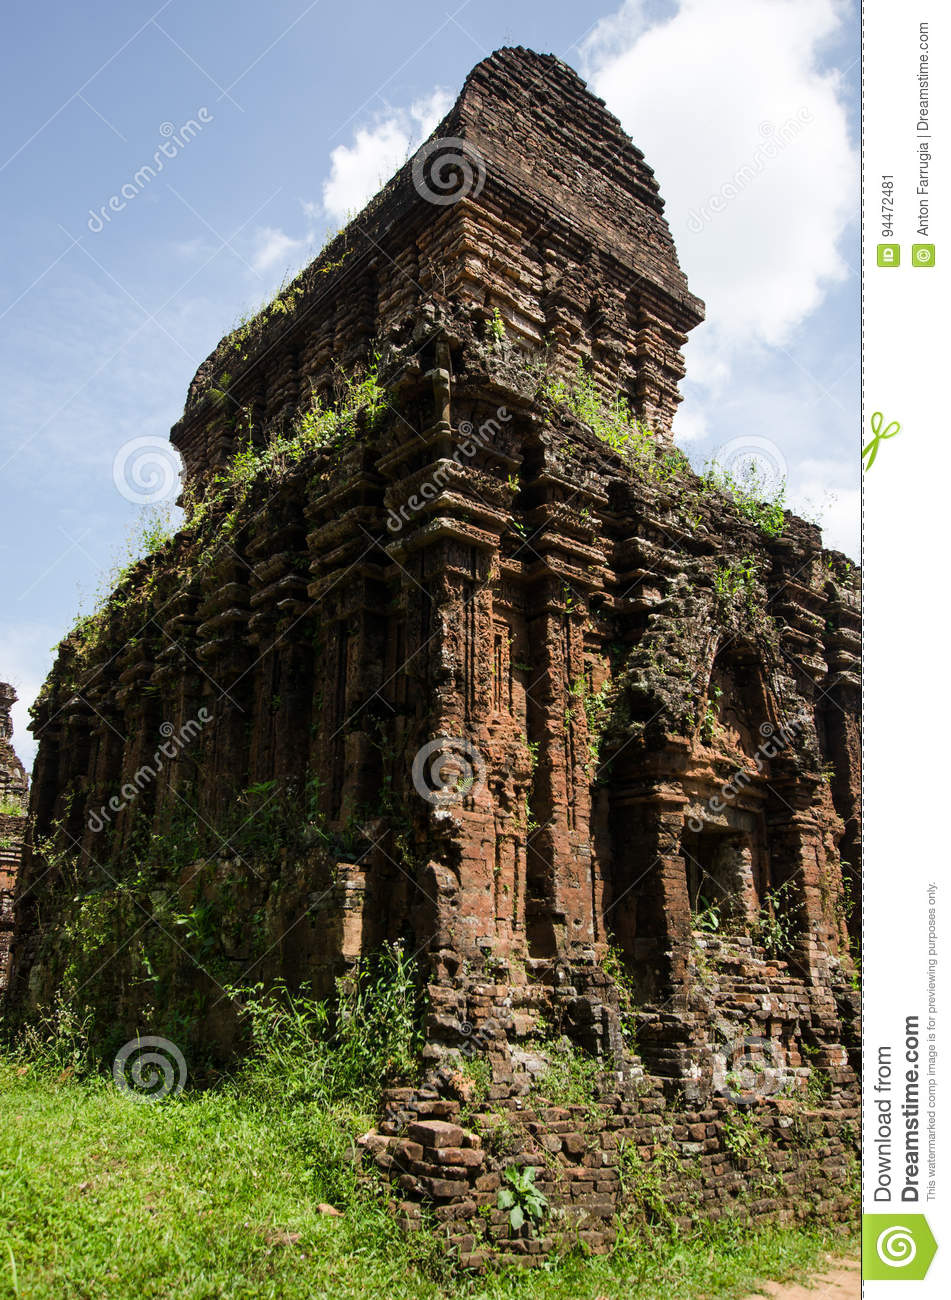 Myson Temple Vietnam stock image  Image of creepers, blue